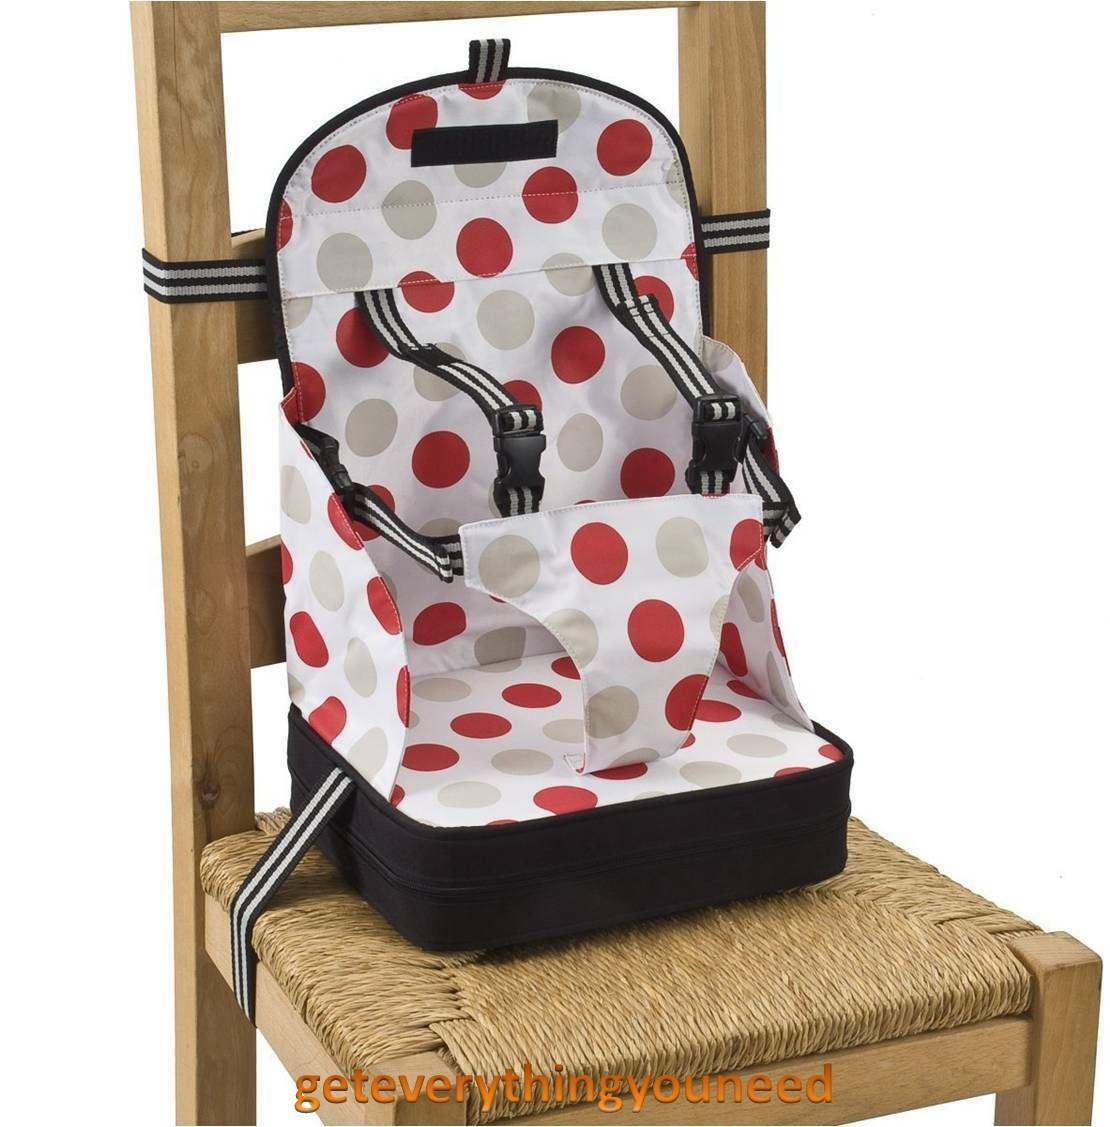 bag high chair dining covers kmart australia booster seat safety room adjustable